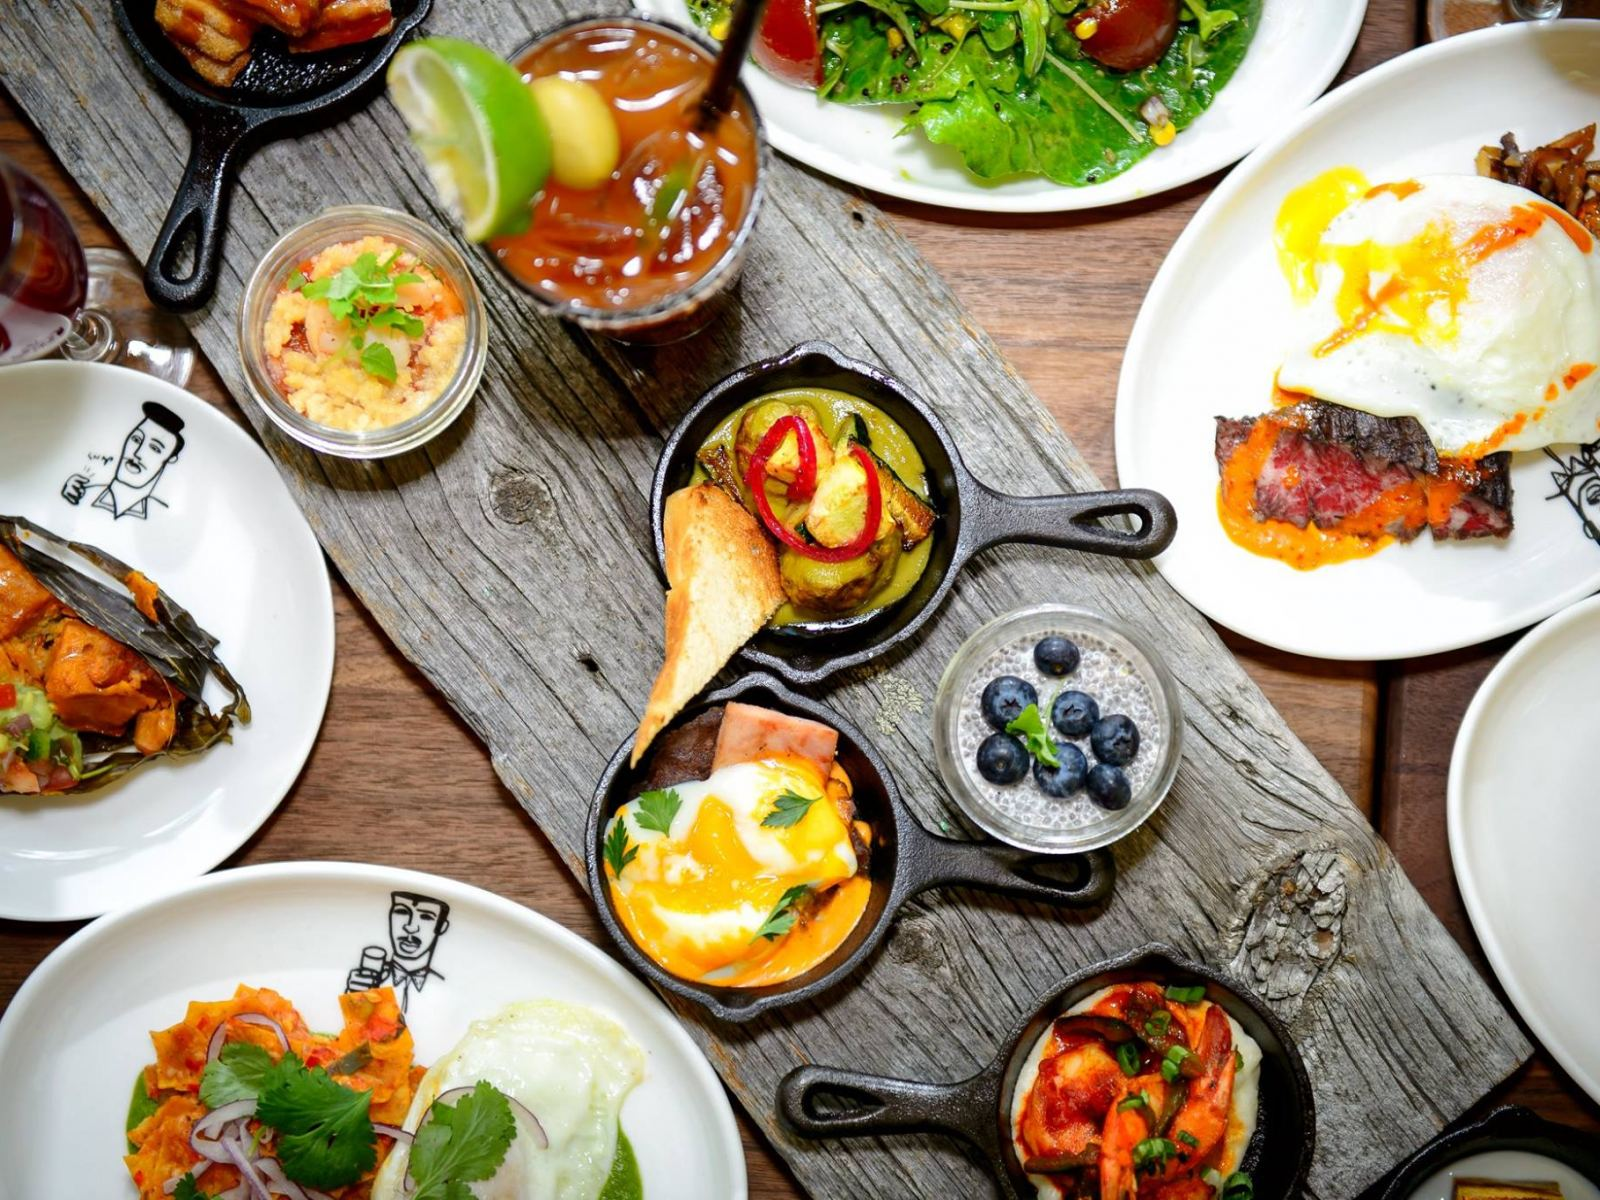 Unlimited small plates at Border Grill's Easter Brunch